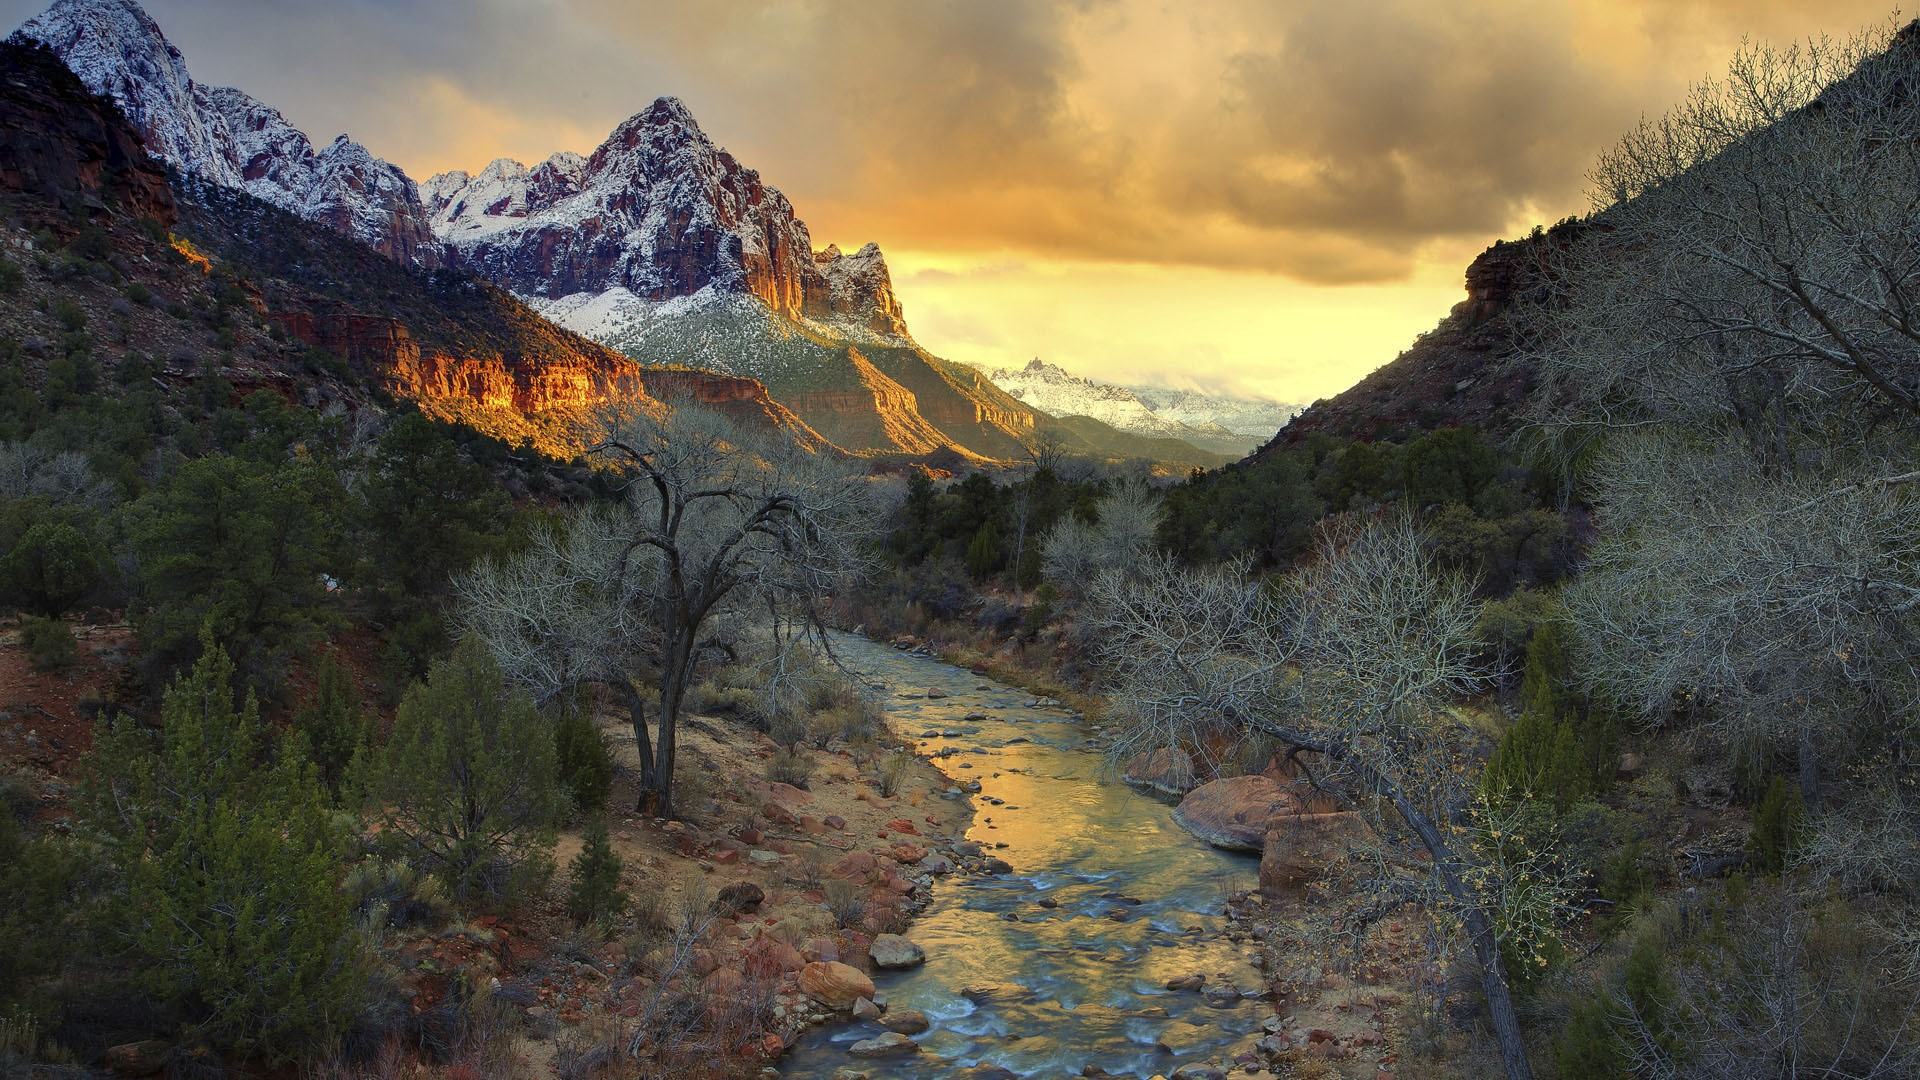 Landscape and Nature Wallpapers